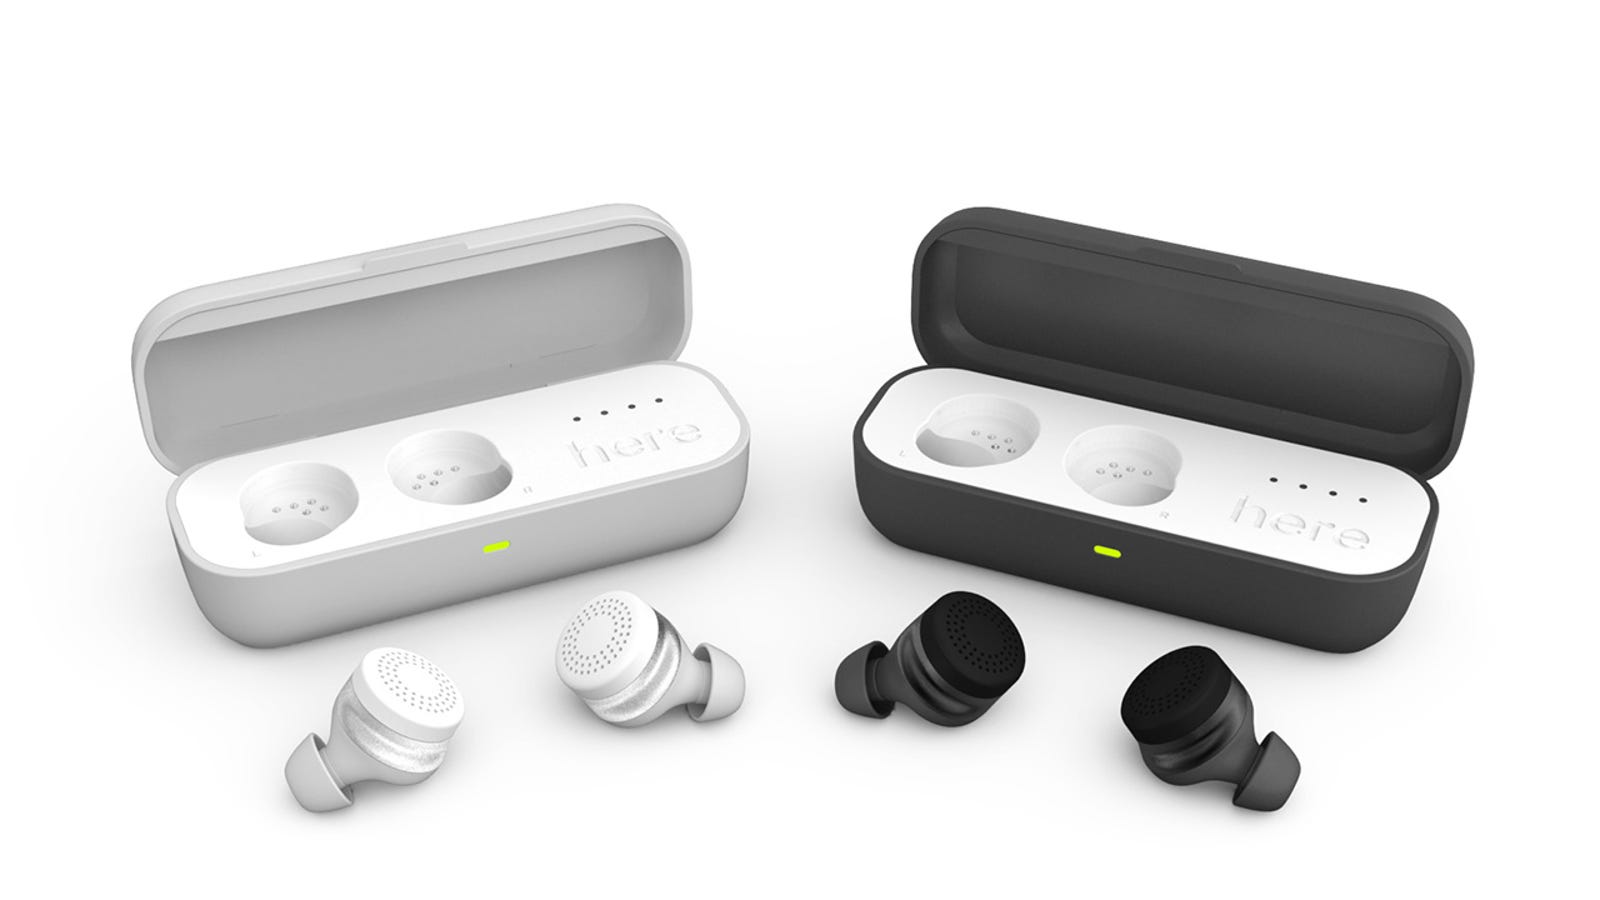 desktop headphone amp - Bionic Earbuds Are Like a Smartphone You Can Leave in Your Ears Forever